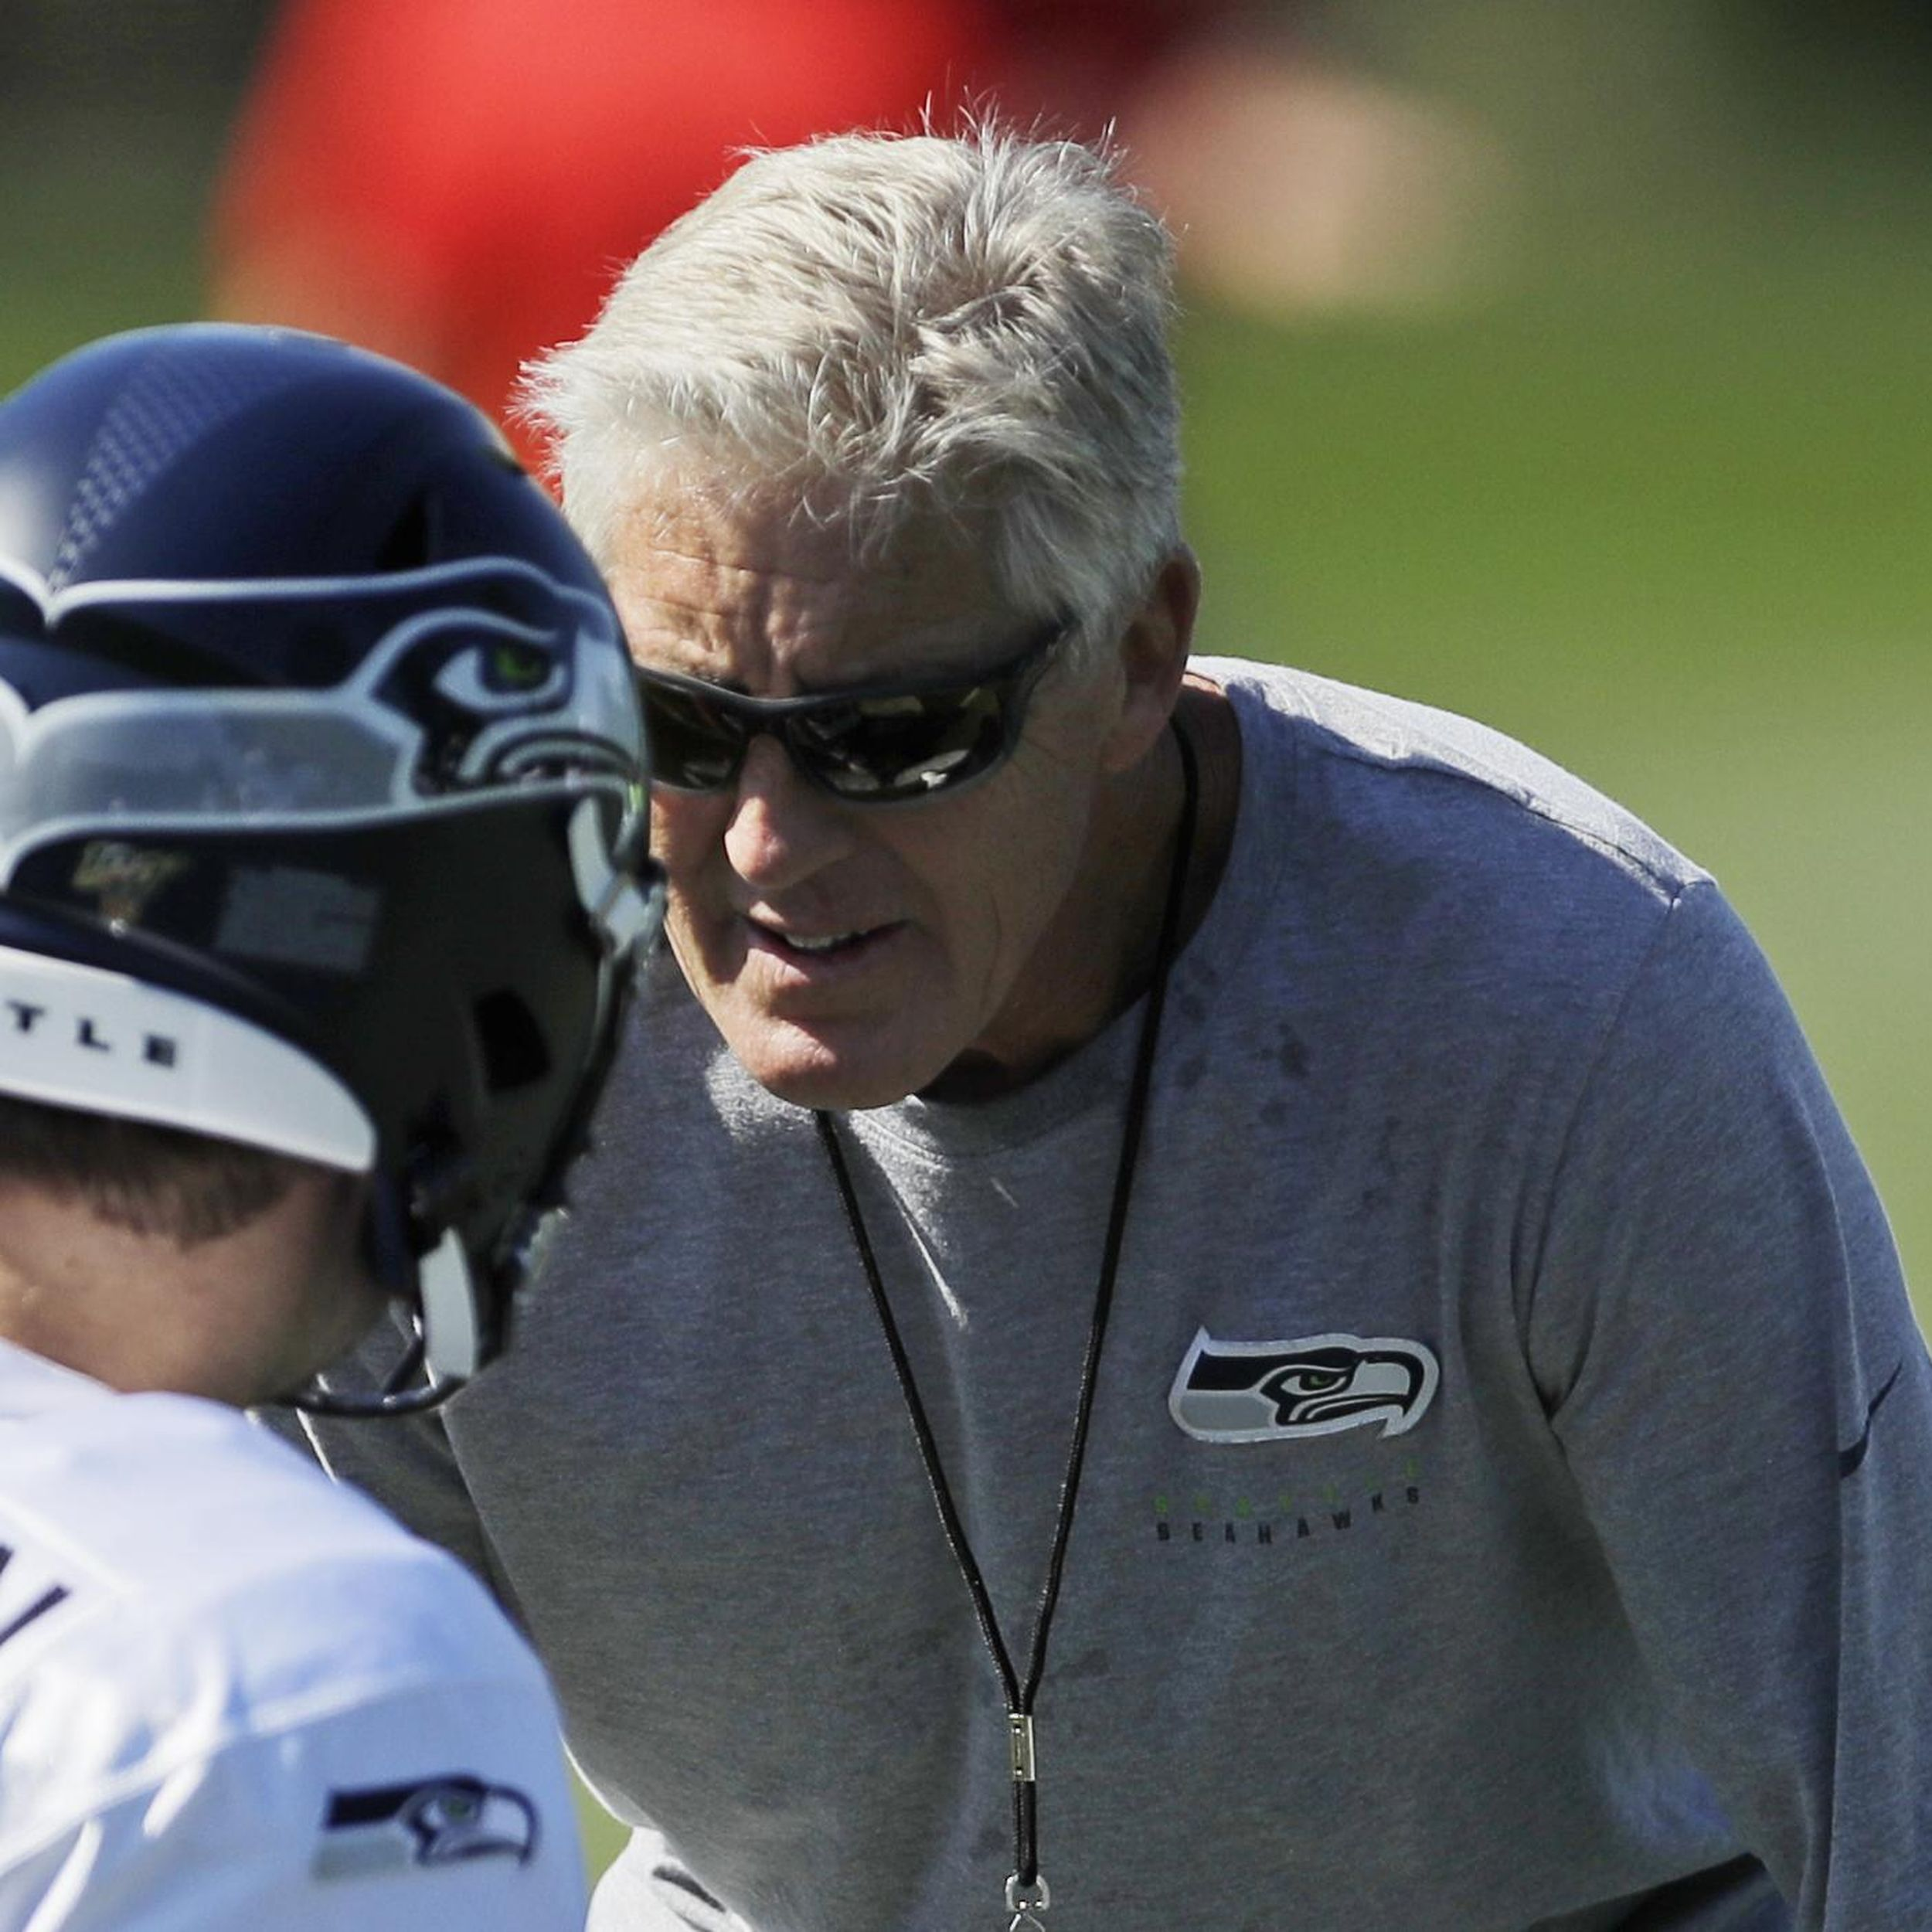 Seahawks Pete Carroll Is The Nfl S Oldest Head Coach You Wouldn T Know It By Watching Him The Spokesman Review